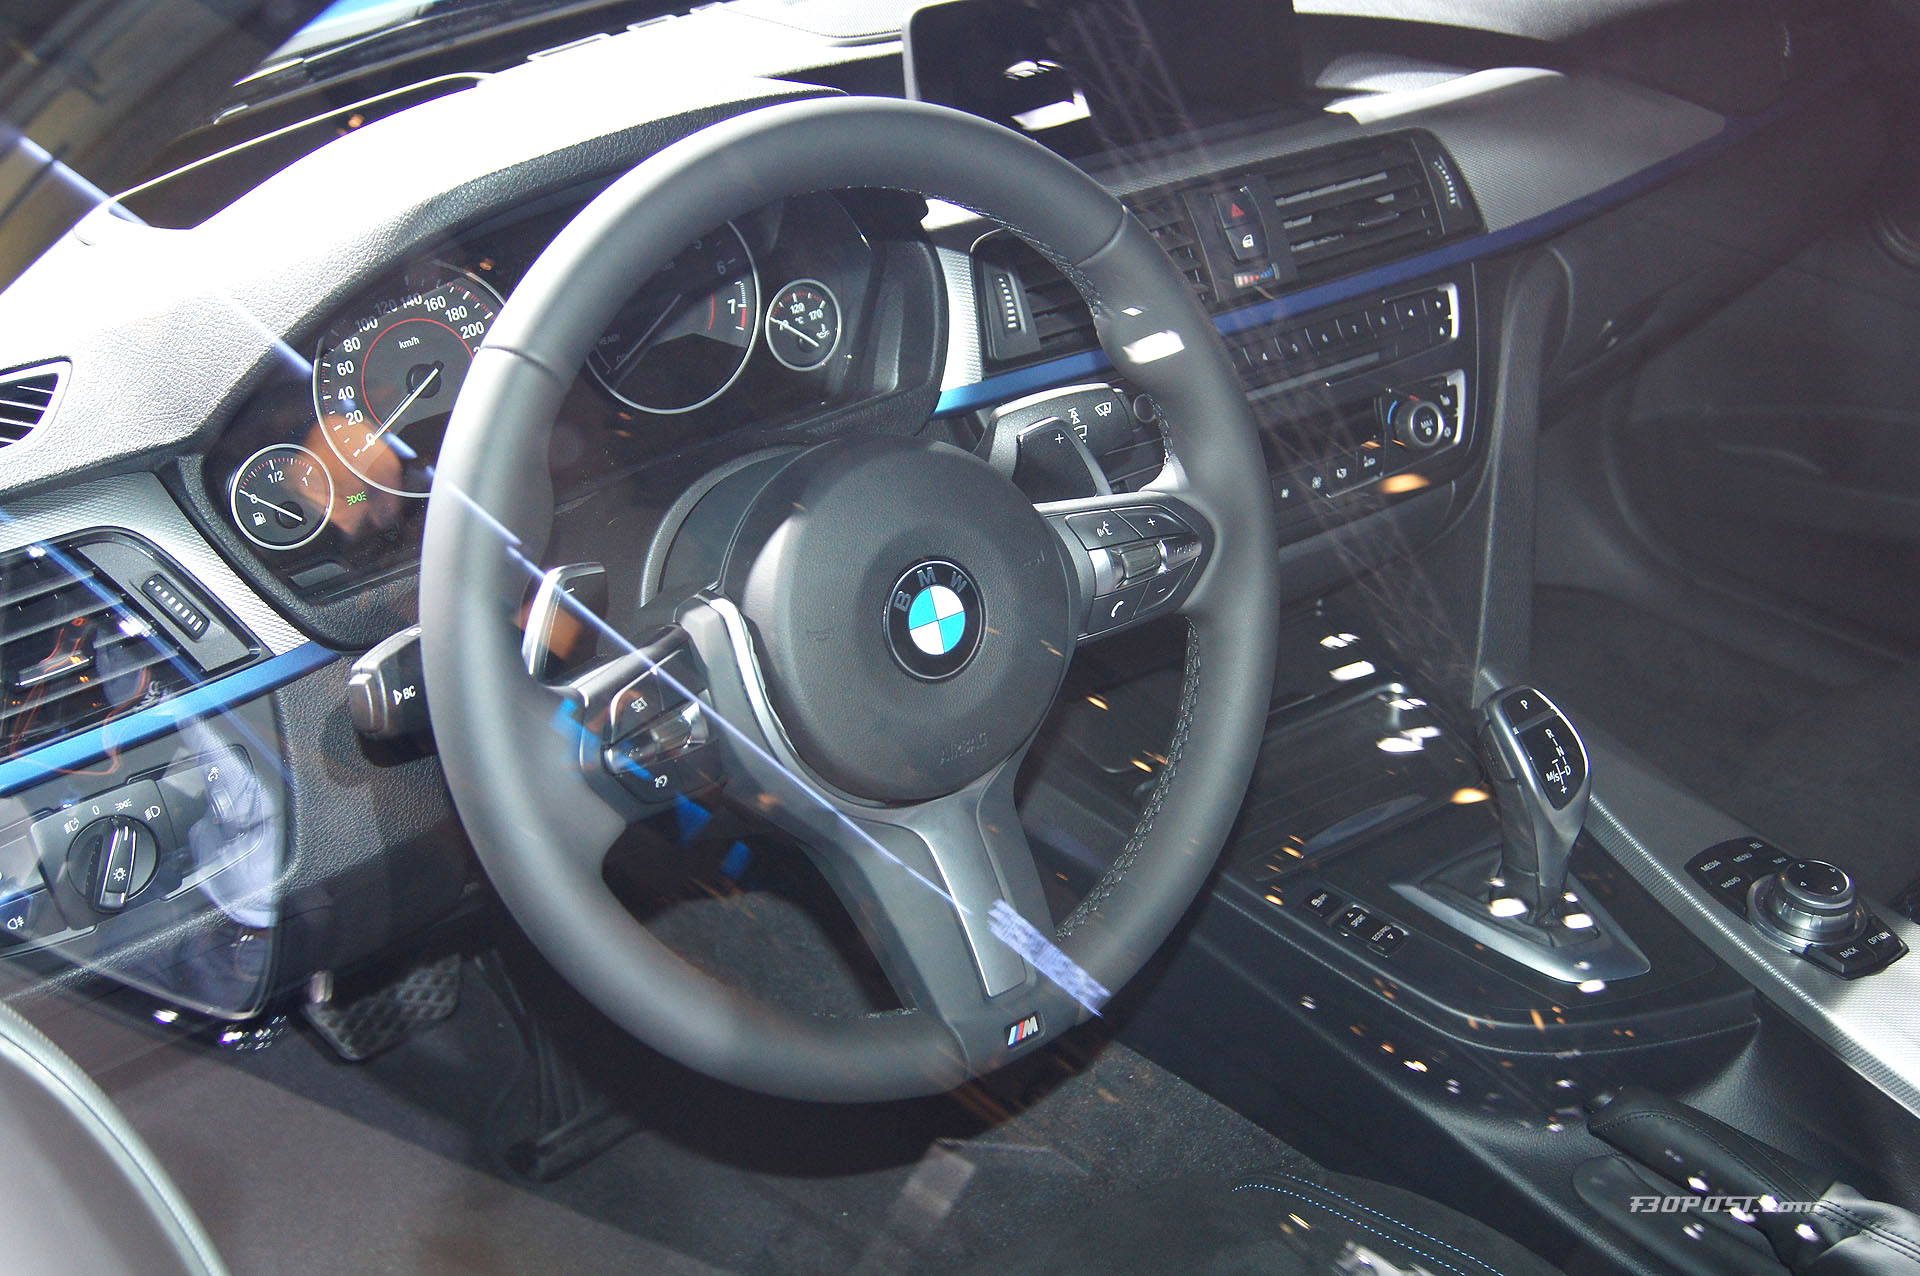 Bmw F30 3 Series M Sport Info And Photos Bmw 3 Series And 4 Series Forum F30 F32 F30post